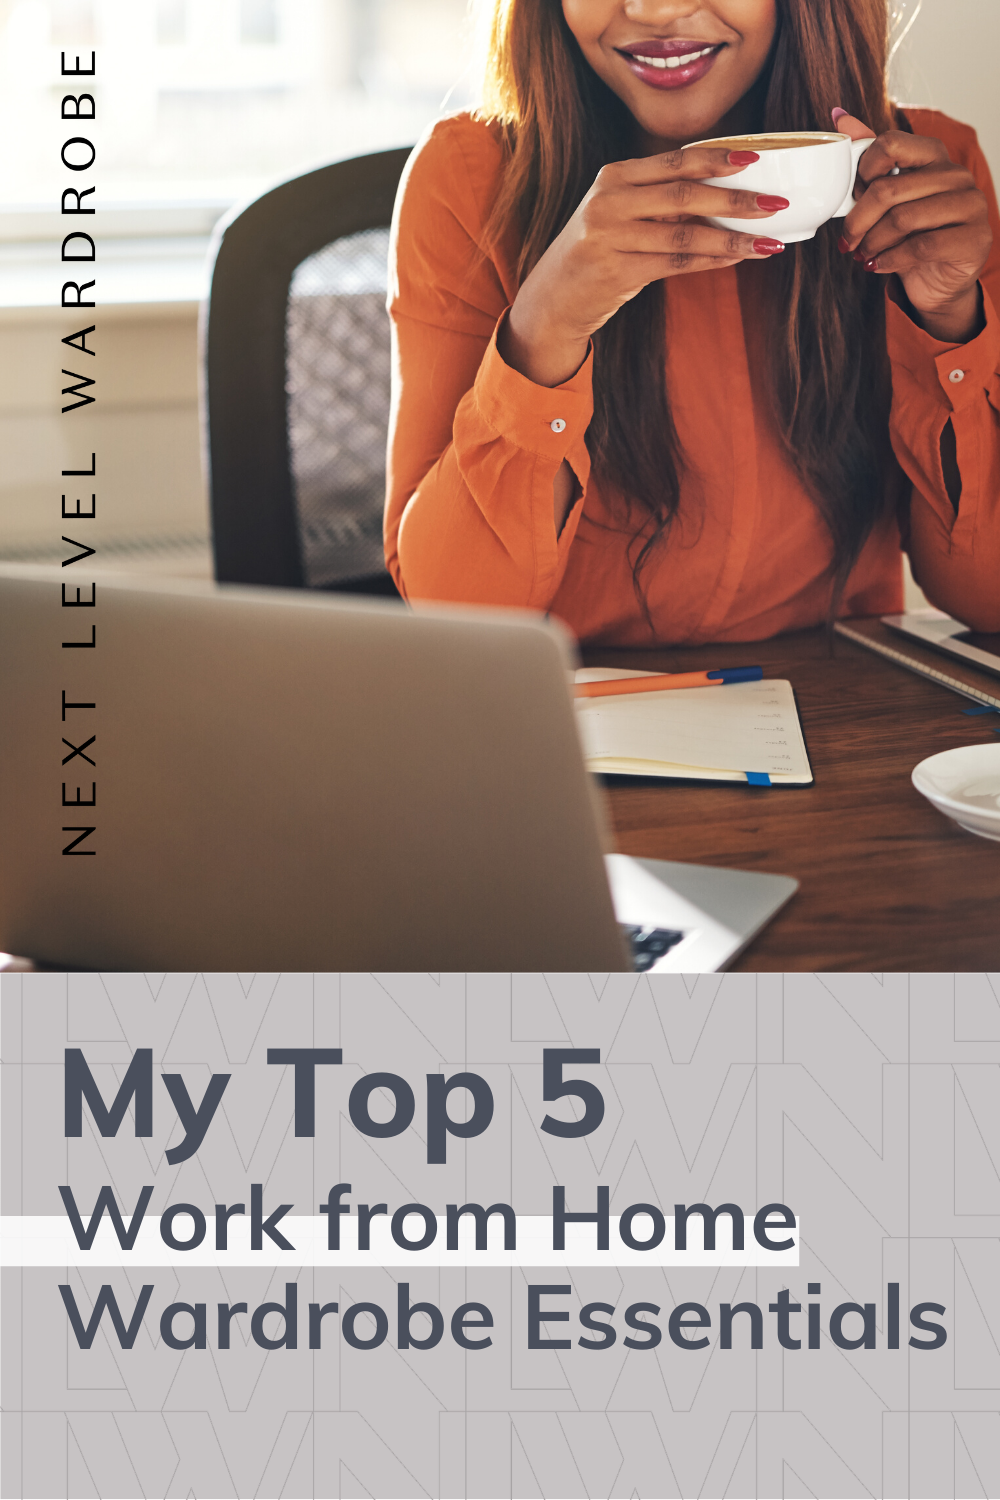 Top 5 Work from Home Clothing Essentials | Next Level Wardrobe